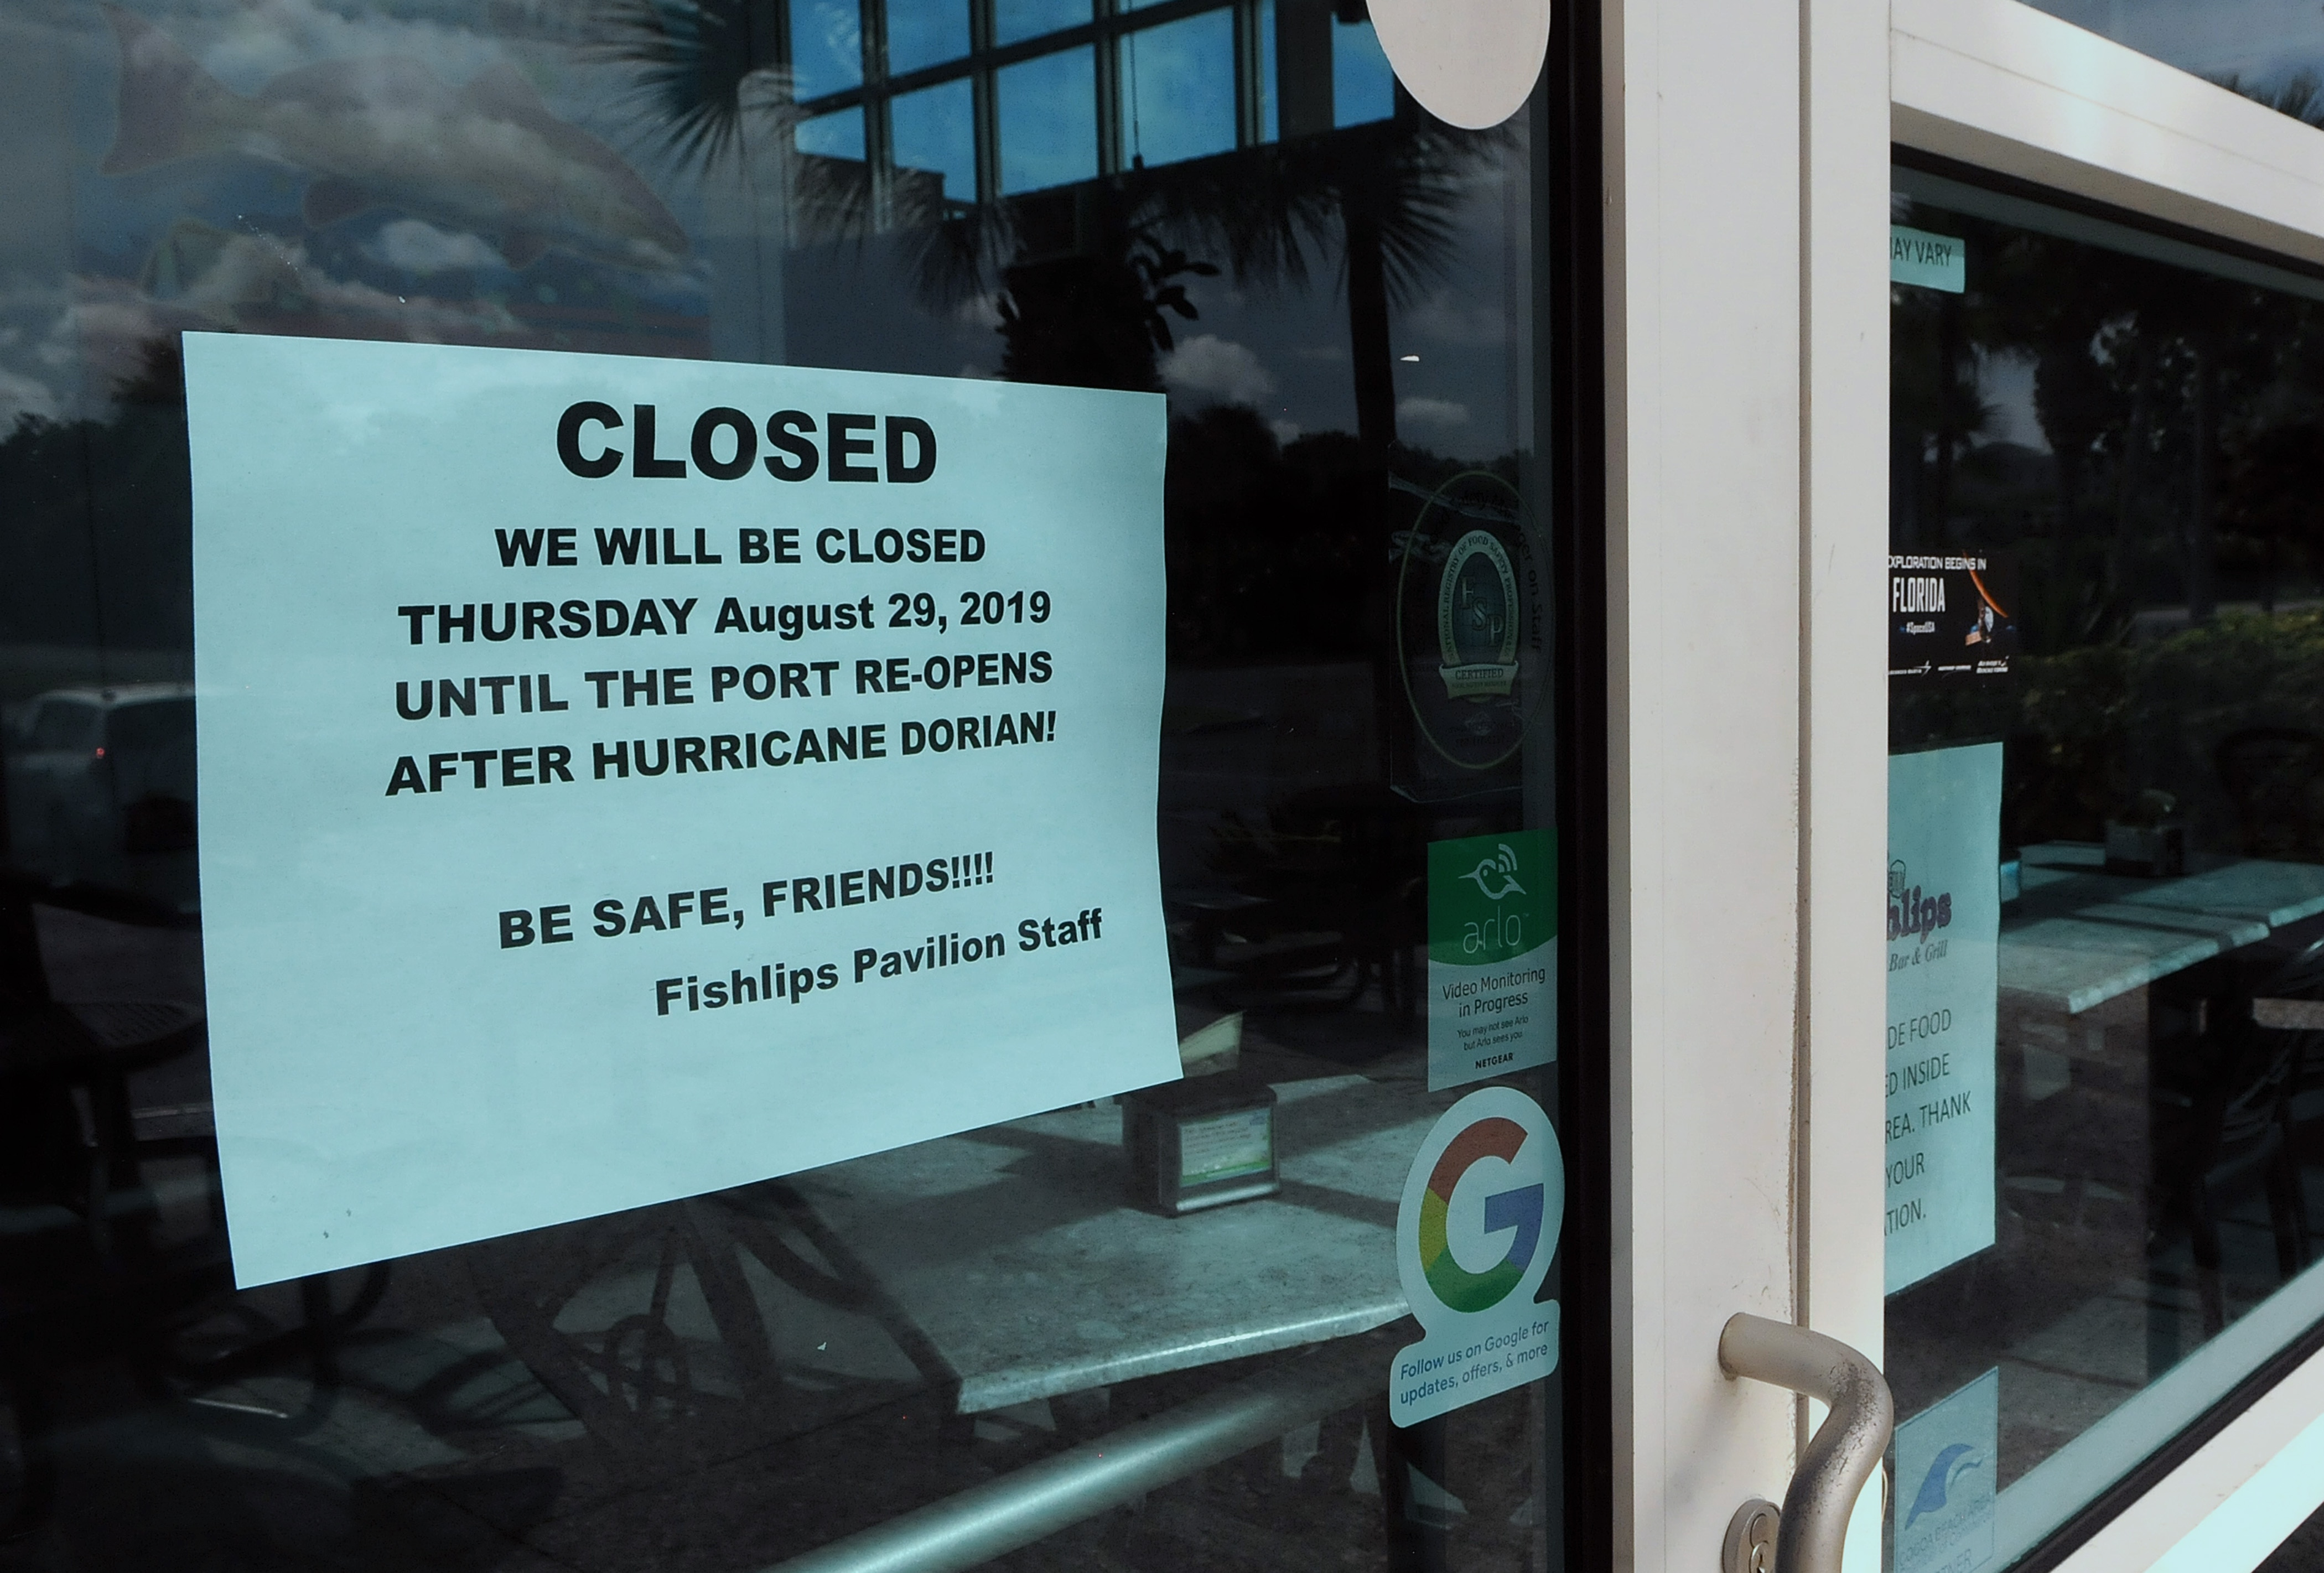 A notice is seen posted on the Fishlips Pavilion window at Jetty Park advising patrons that the restaurant will be closed due to Hurricane Dorian.